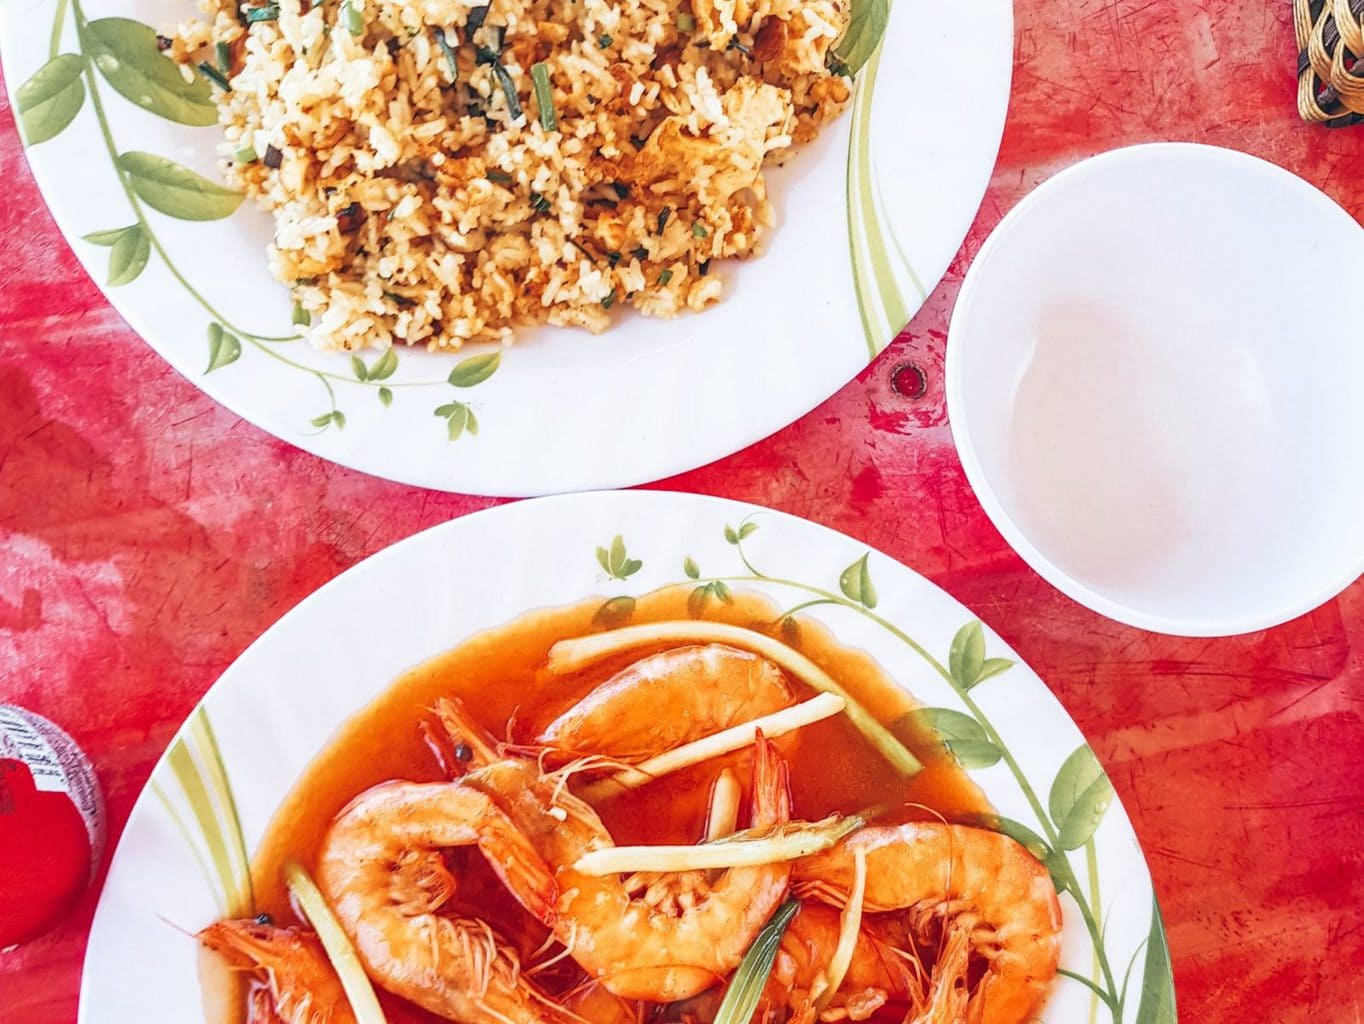 Photo of prawns and fried rice